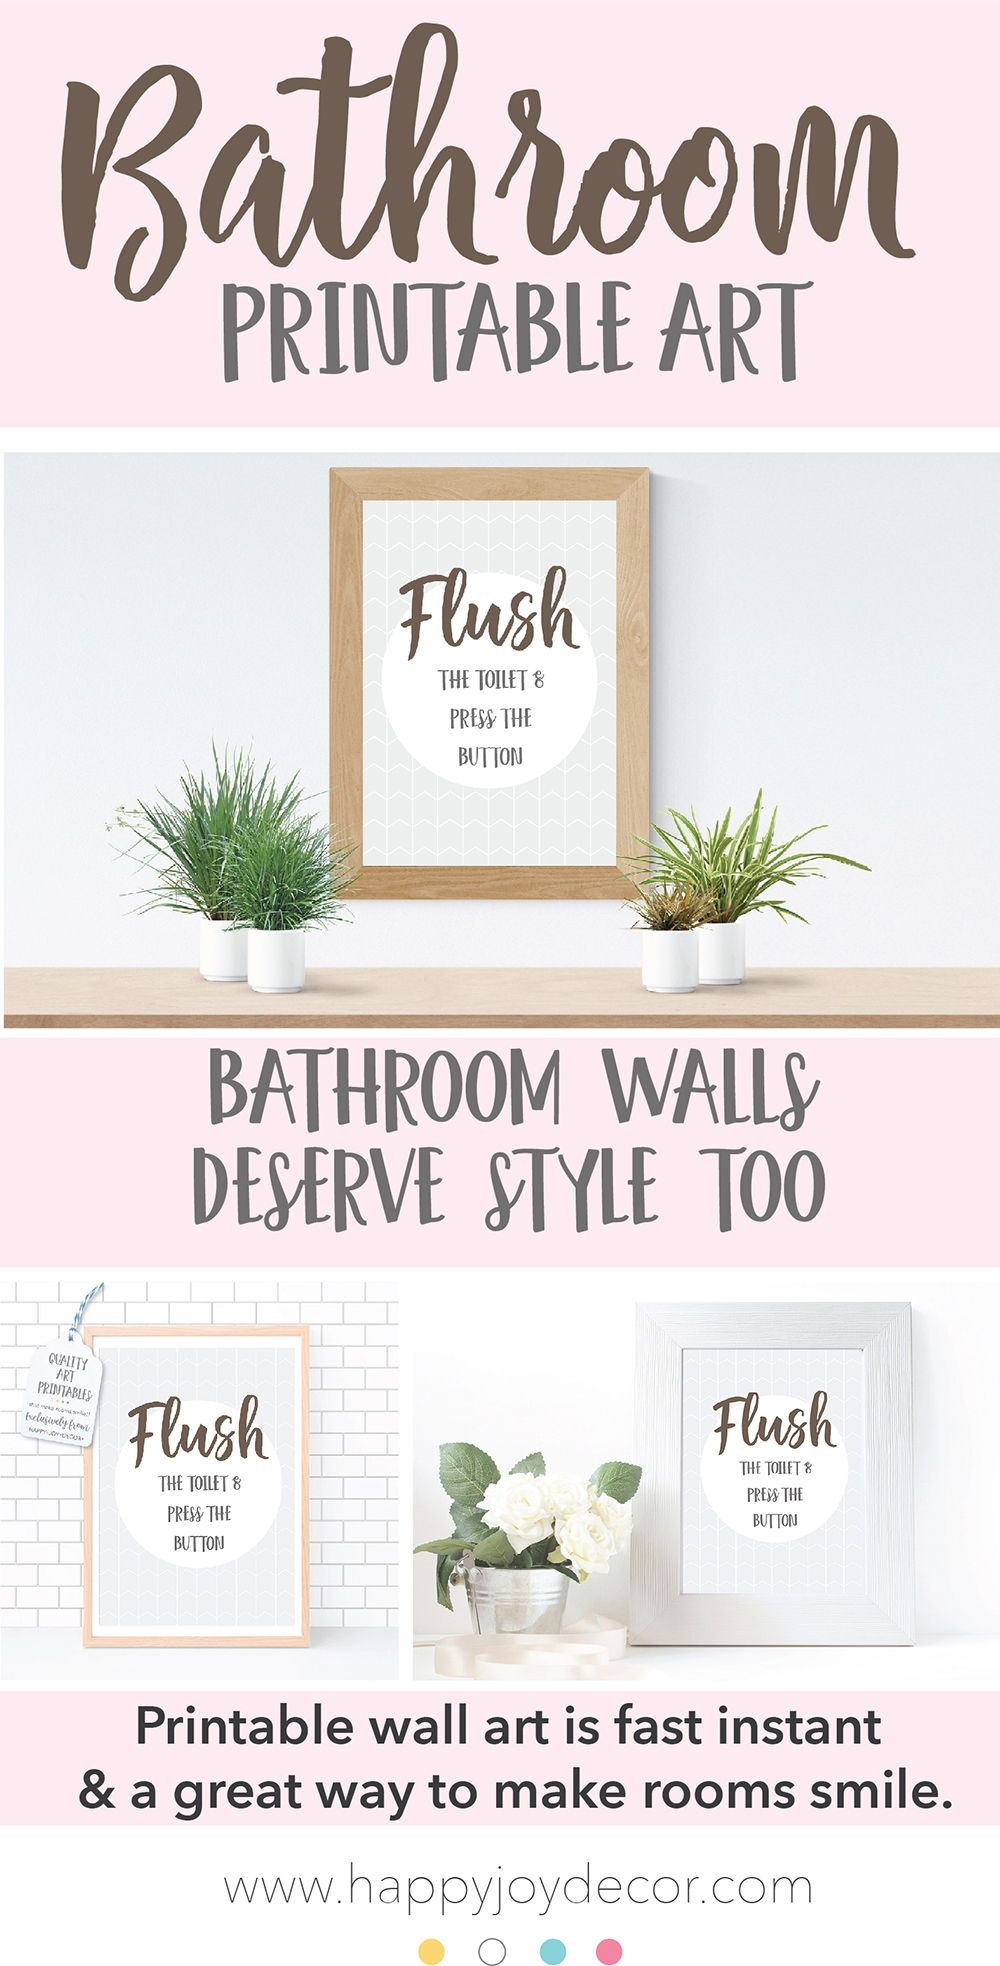 Dry Yourself Bathroom Printable Wall Art Is A Great Way To Add Some Fun To Your Bathroom Walls Who Wall Printables Bathroom Art Printables Printable Wall Art